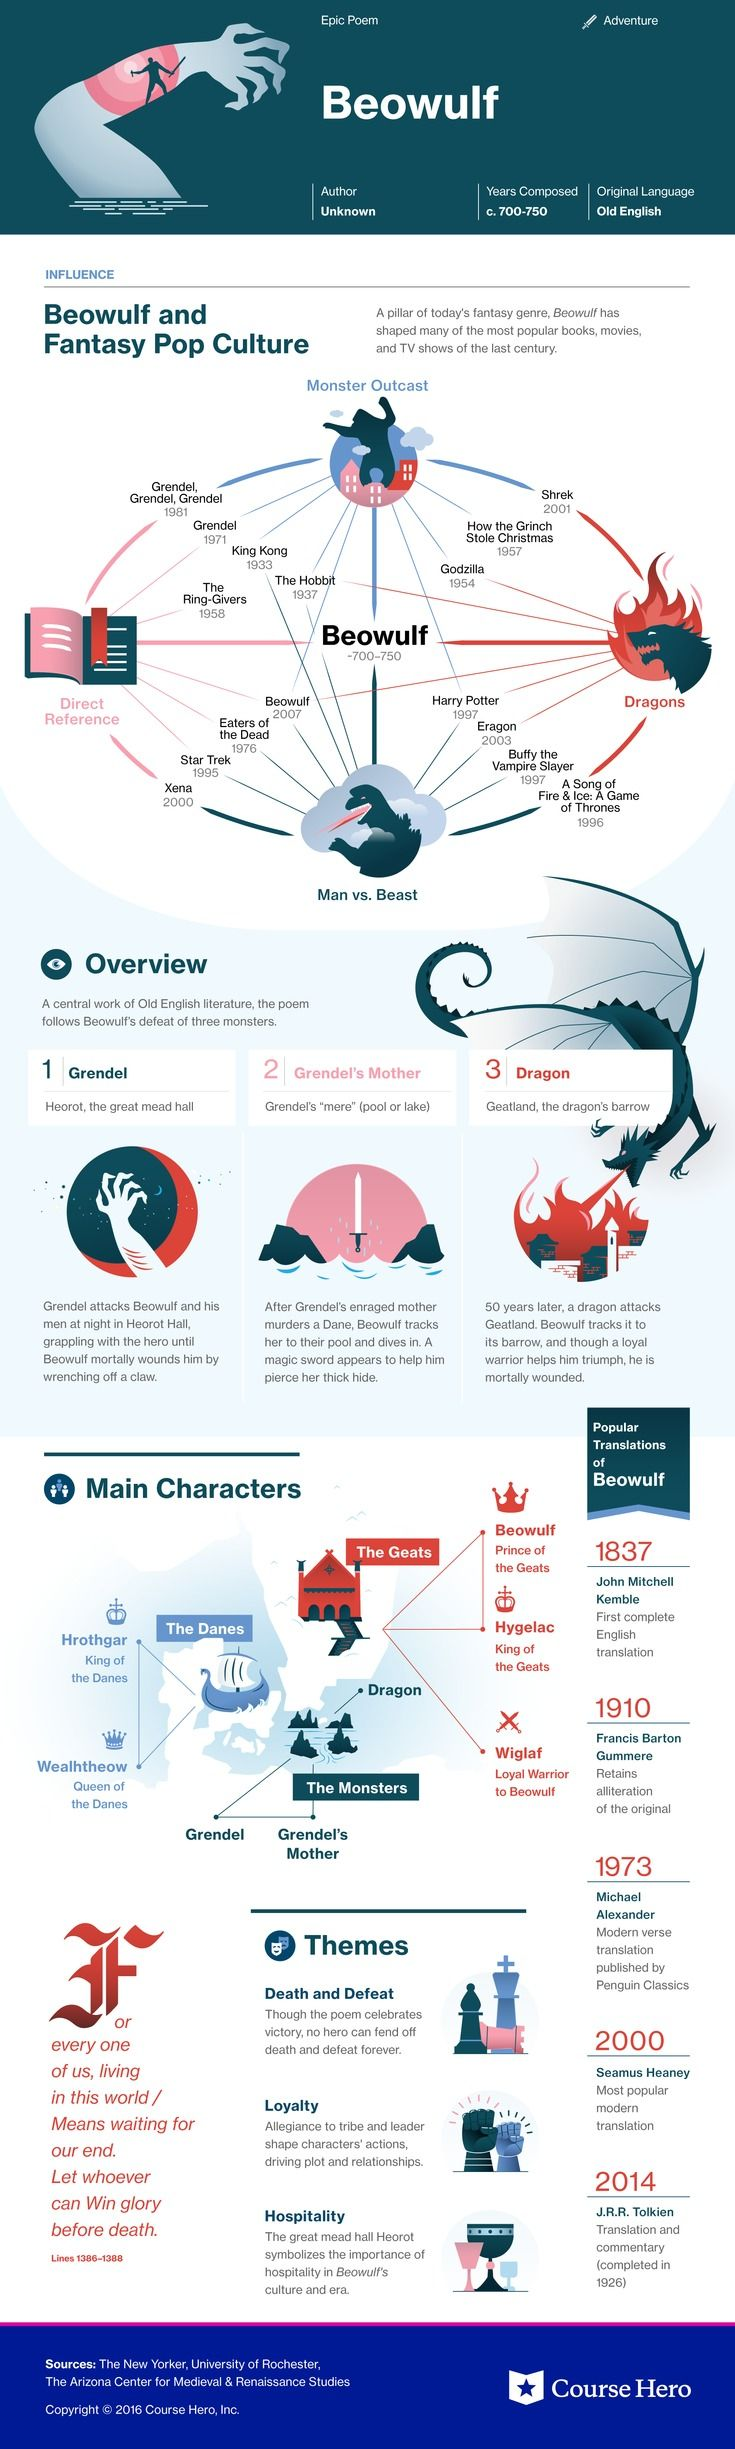 Beowulf Infographic | Literatura, Libros y Lectura